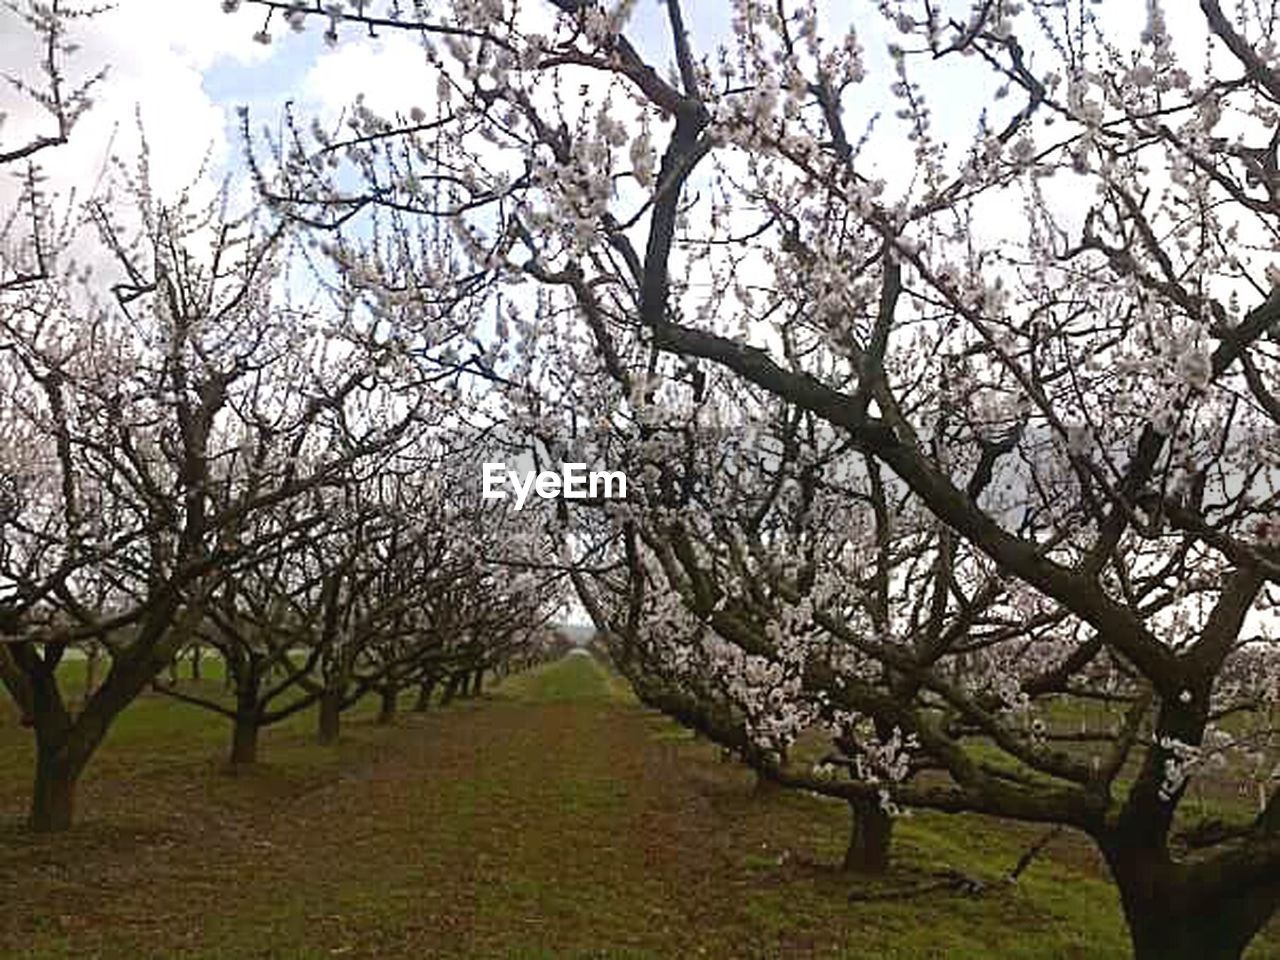 tree, almond tree, blossom, orchard, branch, nature, springtime, beauty in nature, flower, growth, agriculture, outdoors, day, no people, beehive, field, tranquility, apiculture, landscape, fragility, sky, rural scene, scenics, freshness